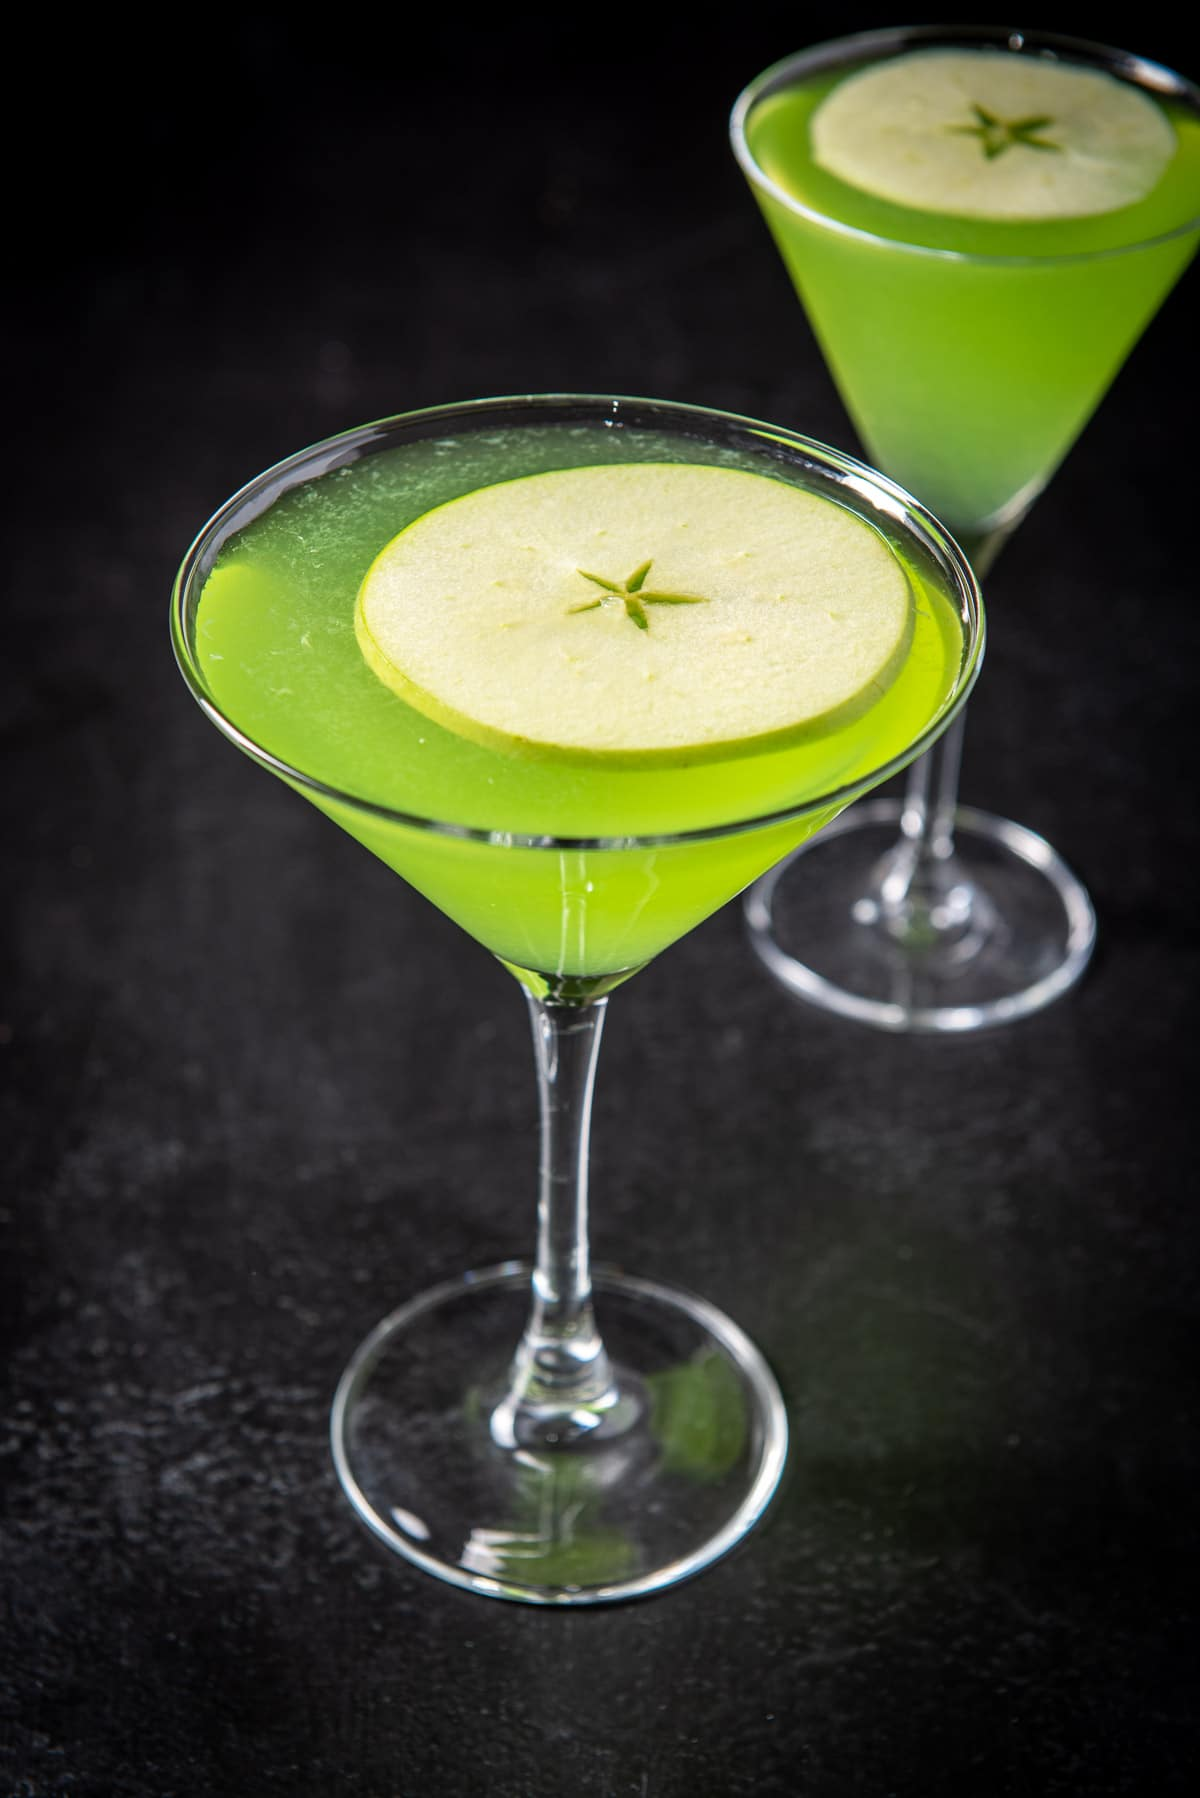 Close up of the apple floating in the sour appletini cocktail